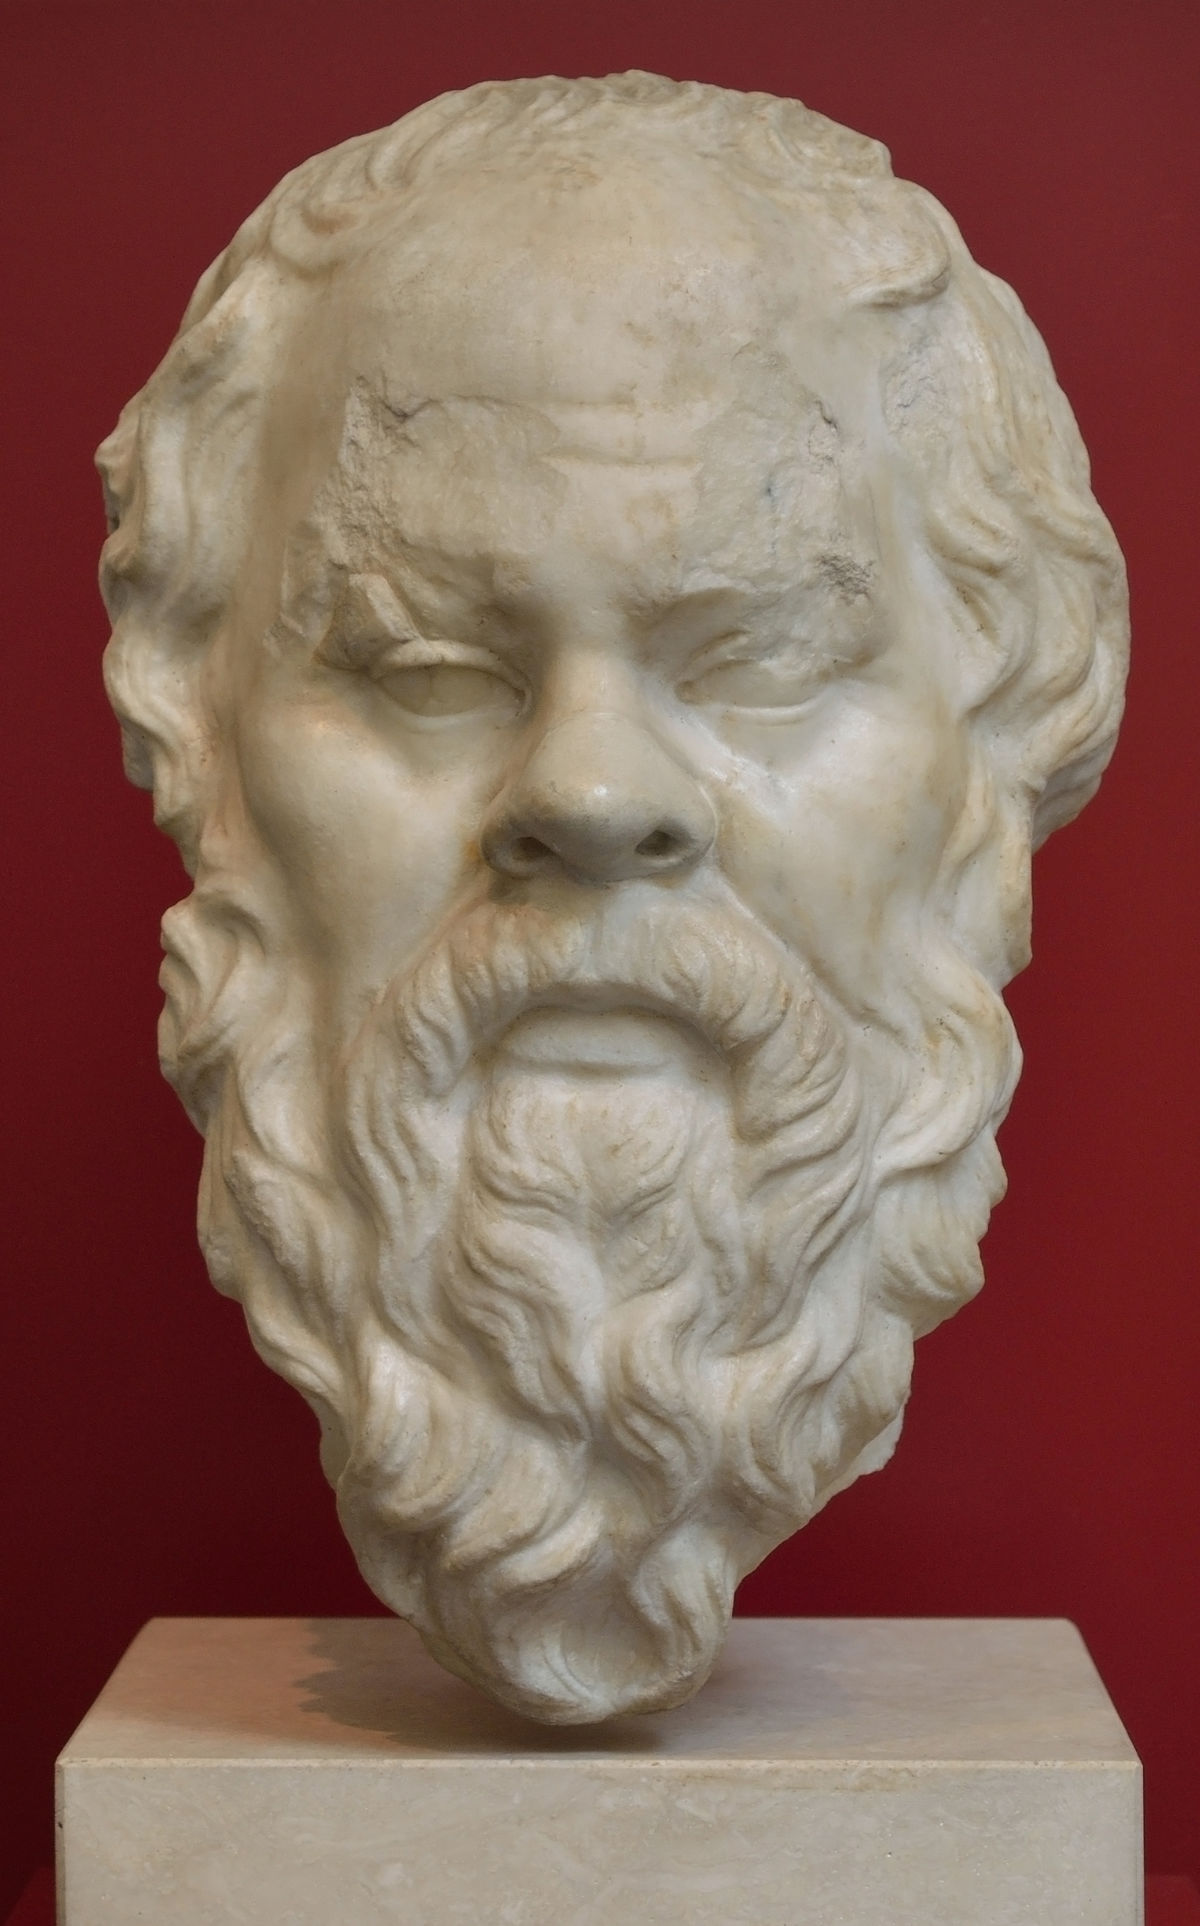 socrates and plato critical thinking Socrates, plato or aristotle are the big three ancient greek philosophers and, at  the same time, three of the most important figures in the history of western.